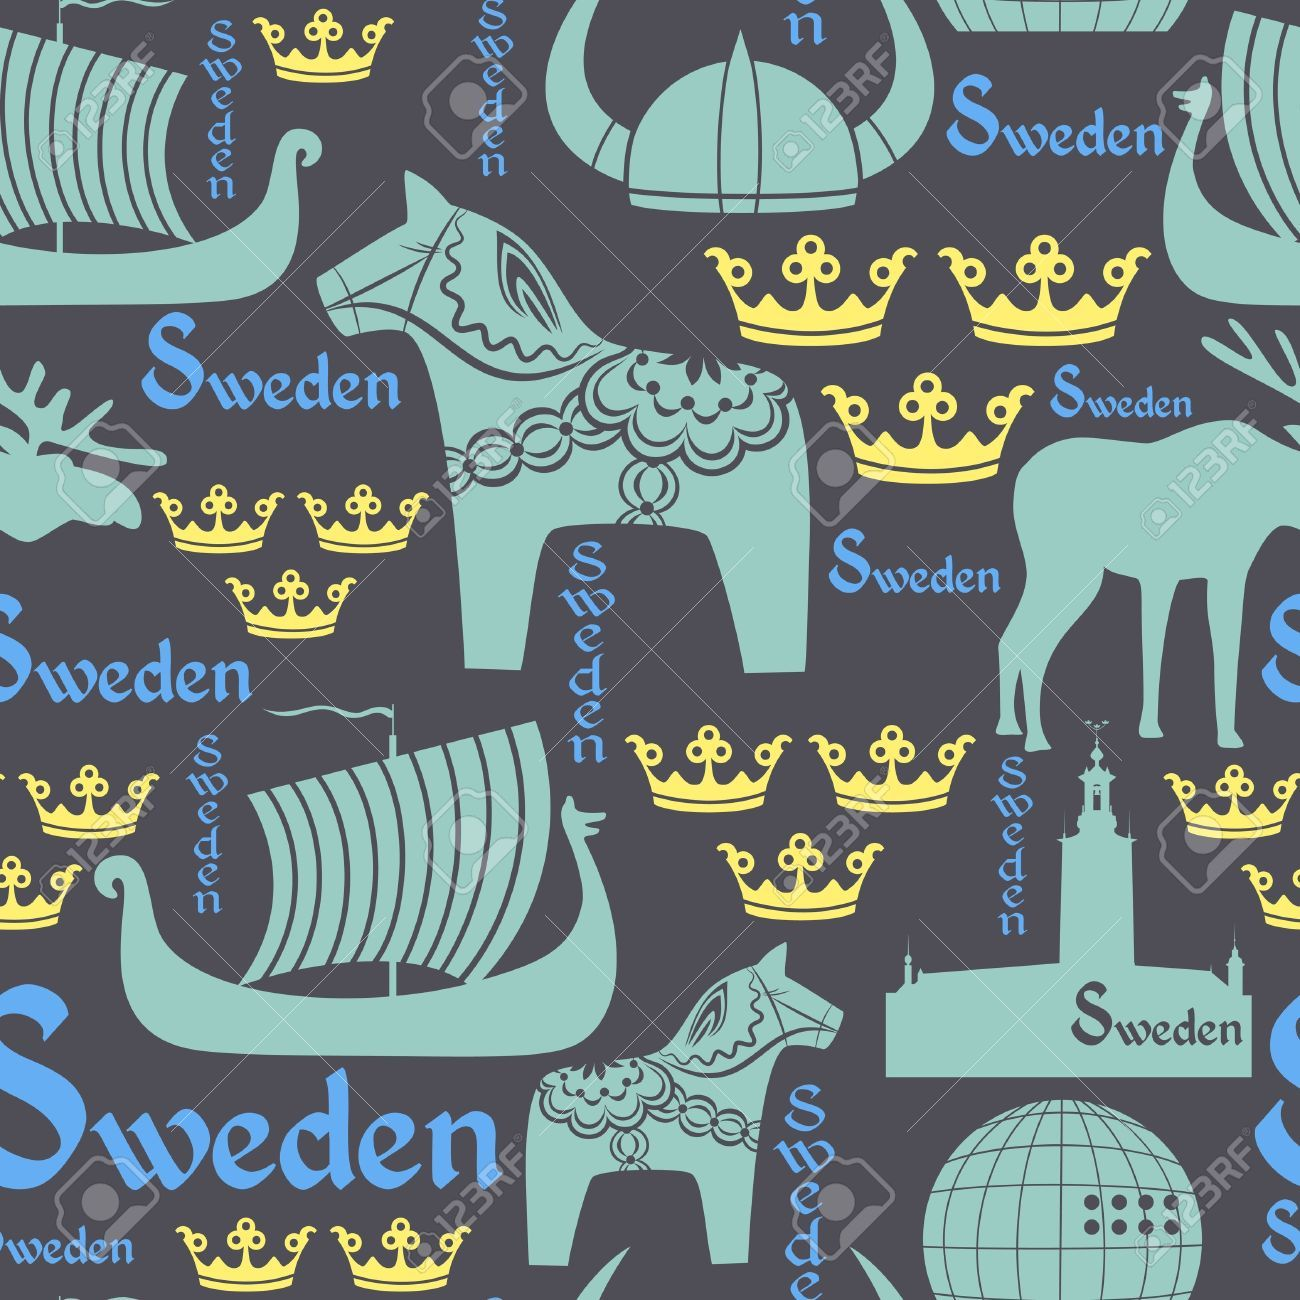 Famous swedish symbols google search orebro graphics pinterest explore swedish symbols national symbols and more biocorpaavc Image collections